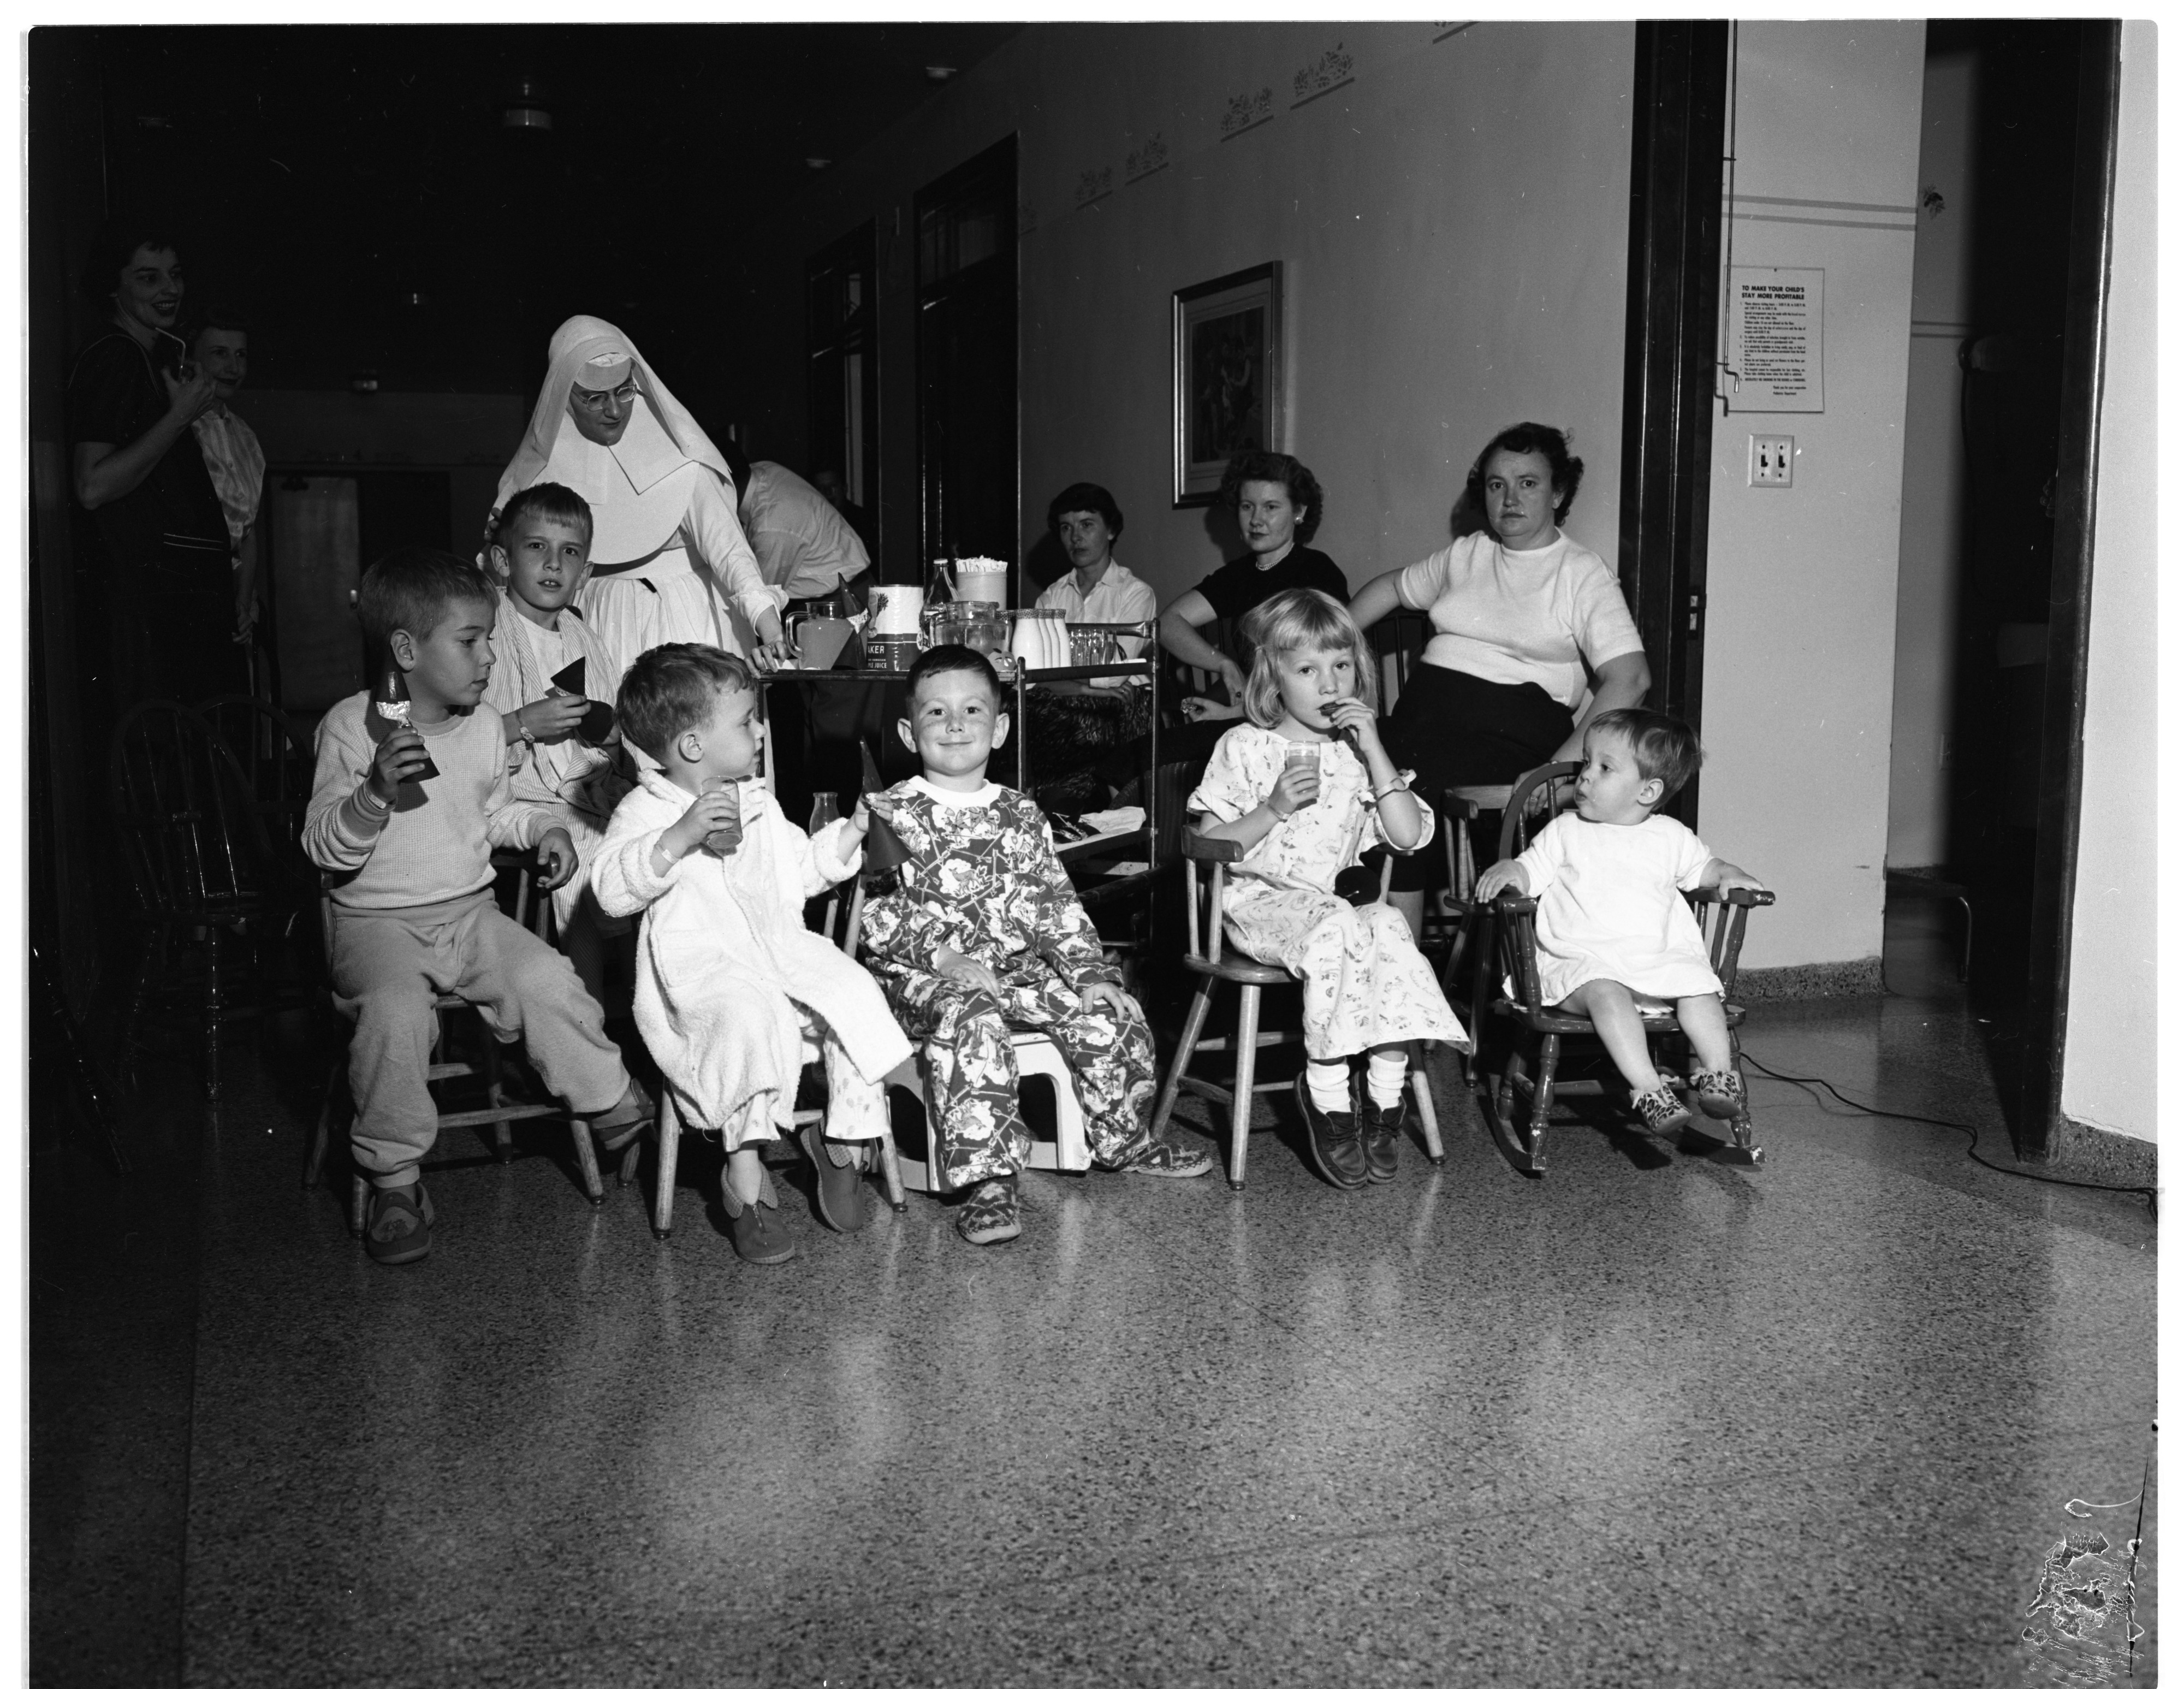 Young St. Joseph Hospital Patients Enjoy Movie Sponsored By Kiwanis Club, November 1956 image